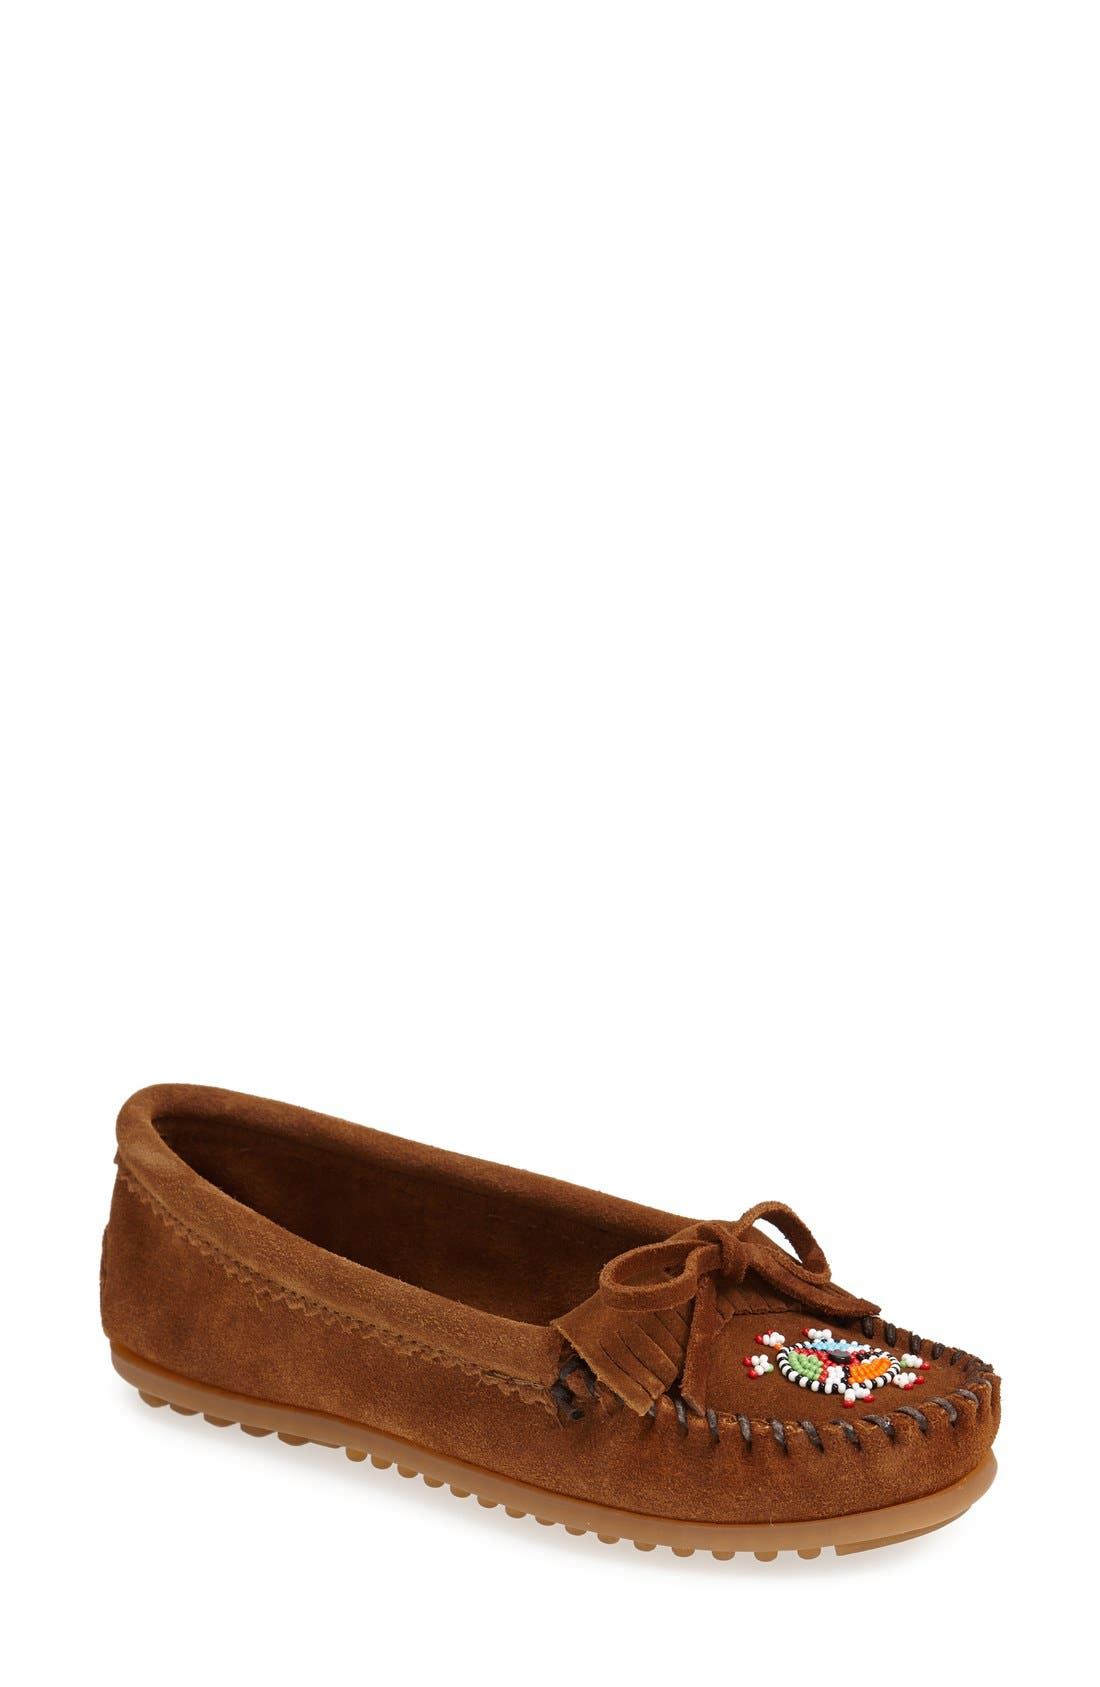 'Me to We Artisans - Kilty' Beaded Moccasin,                             Main thumbnail 1, color,                             Dusty Brown